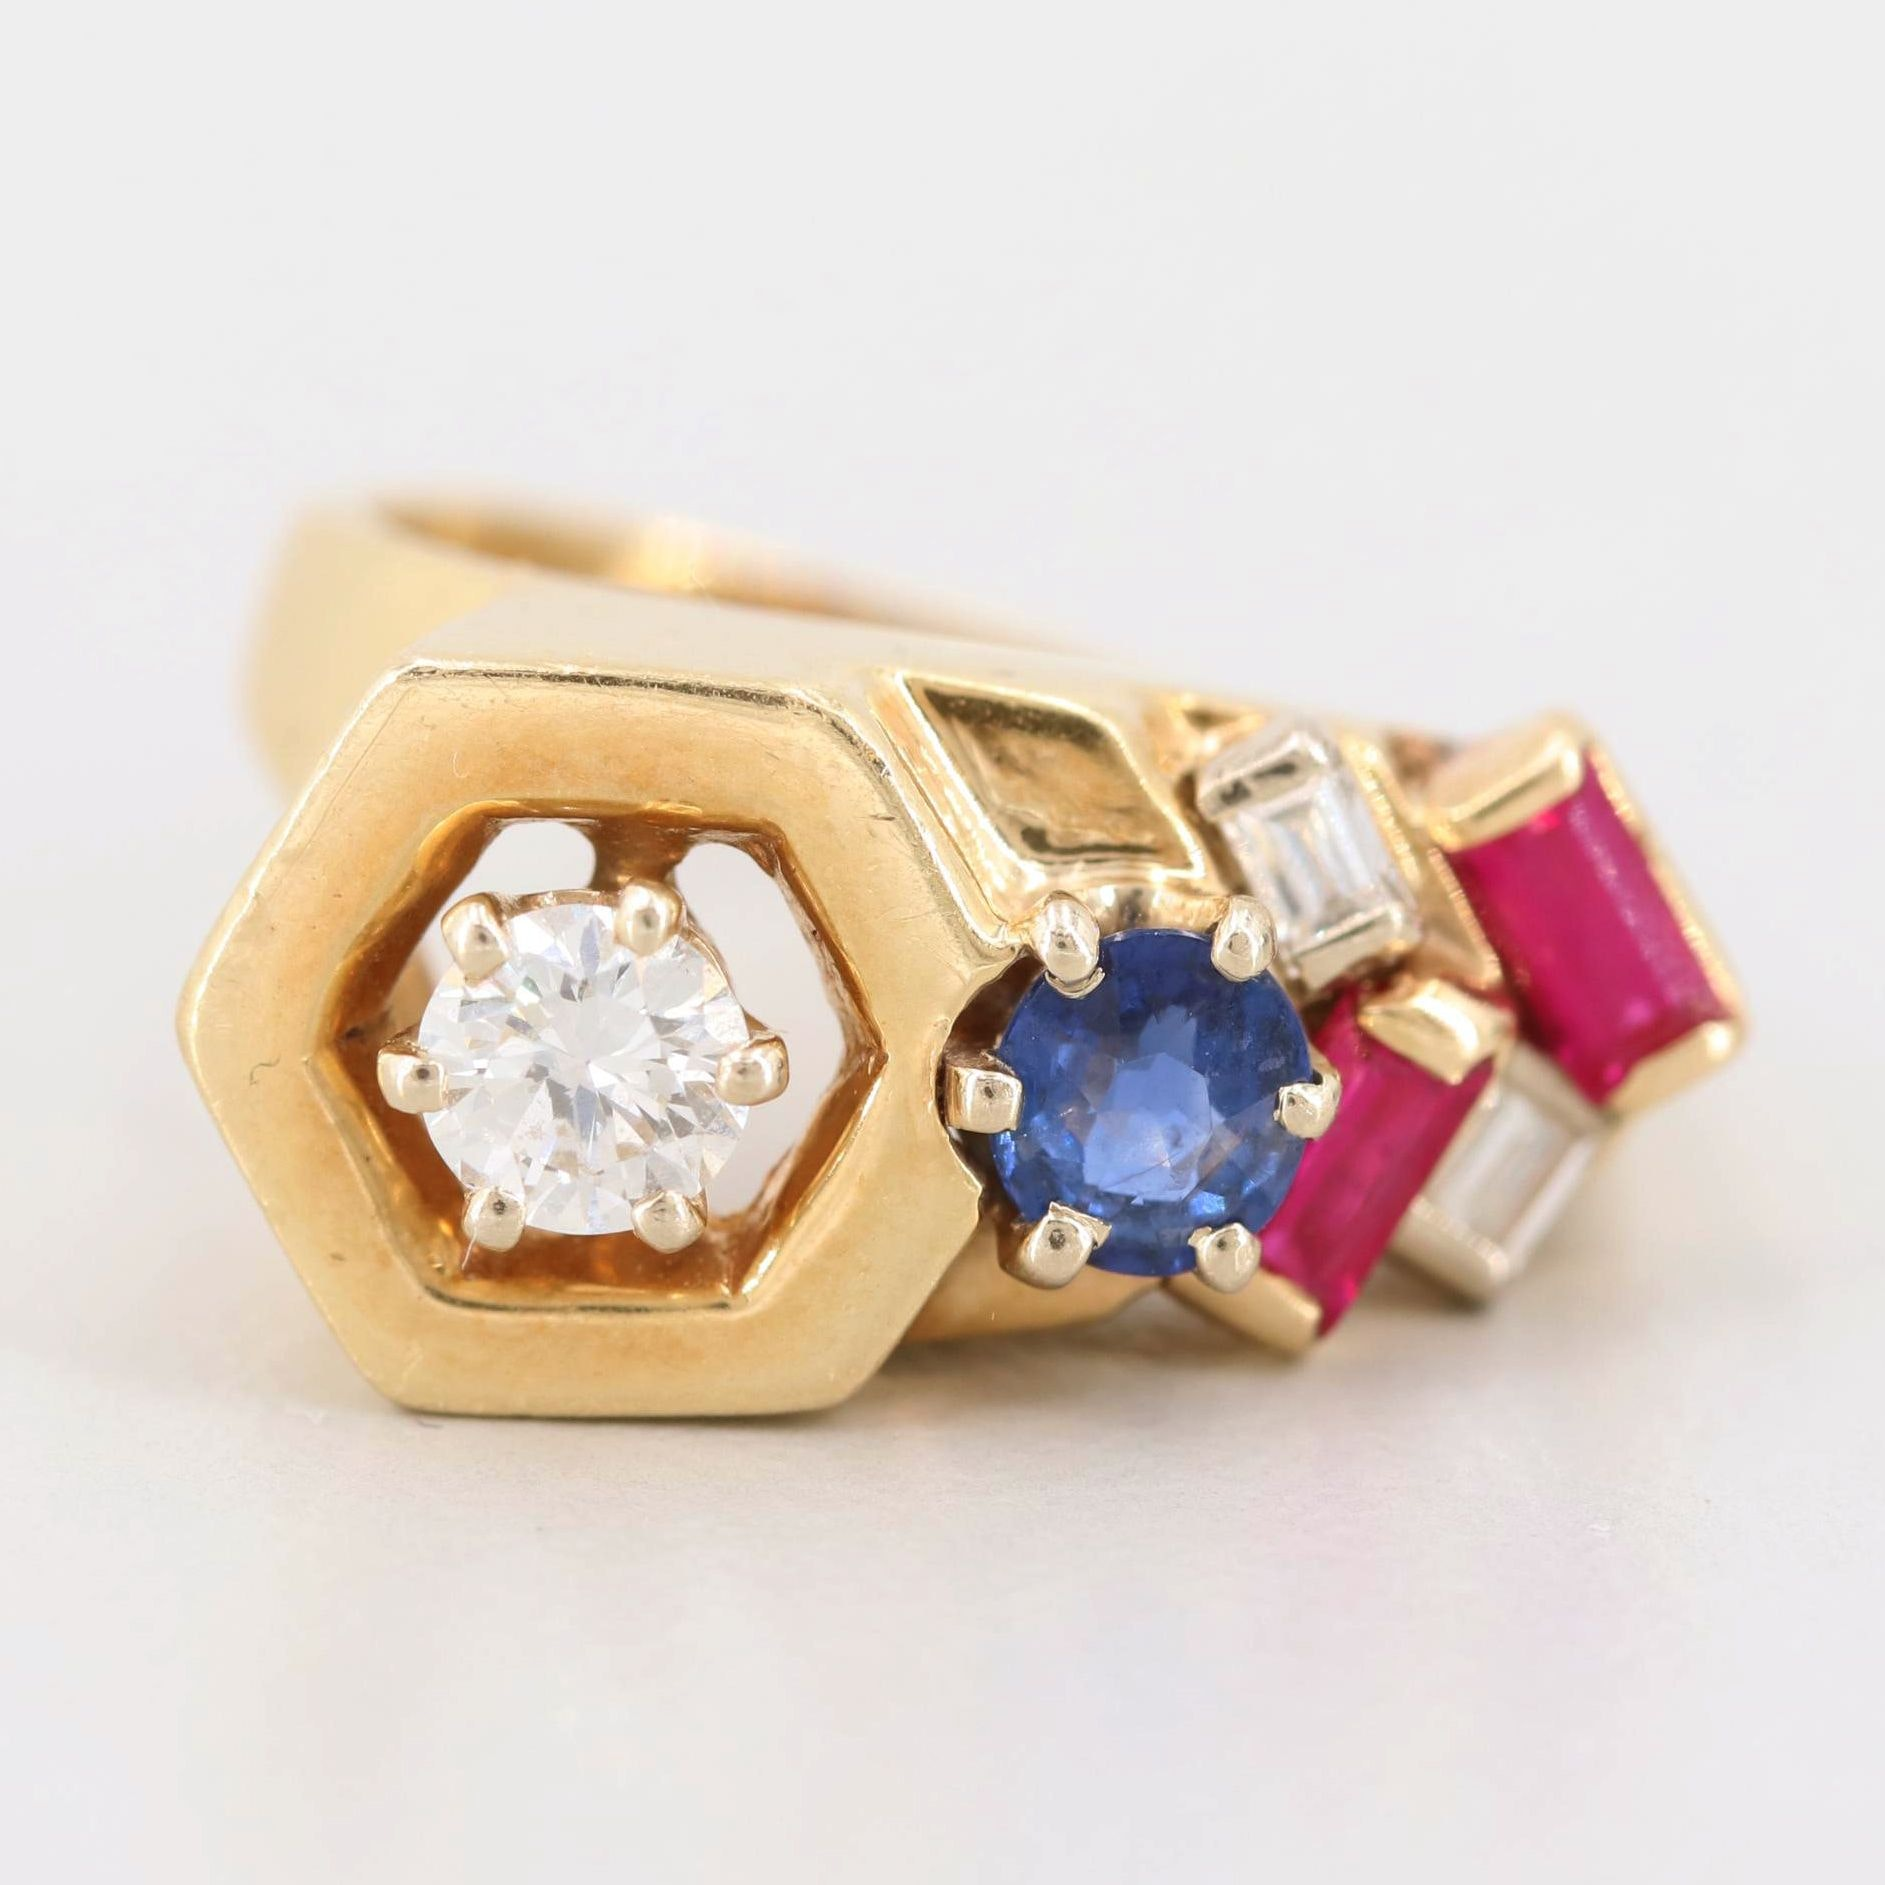 14K Yellow Gold Diamond, Sapphire, and Synthetic Ruby Ring